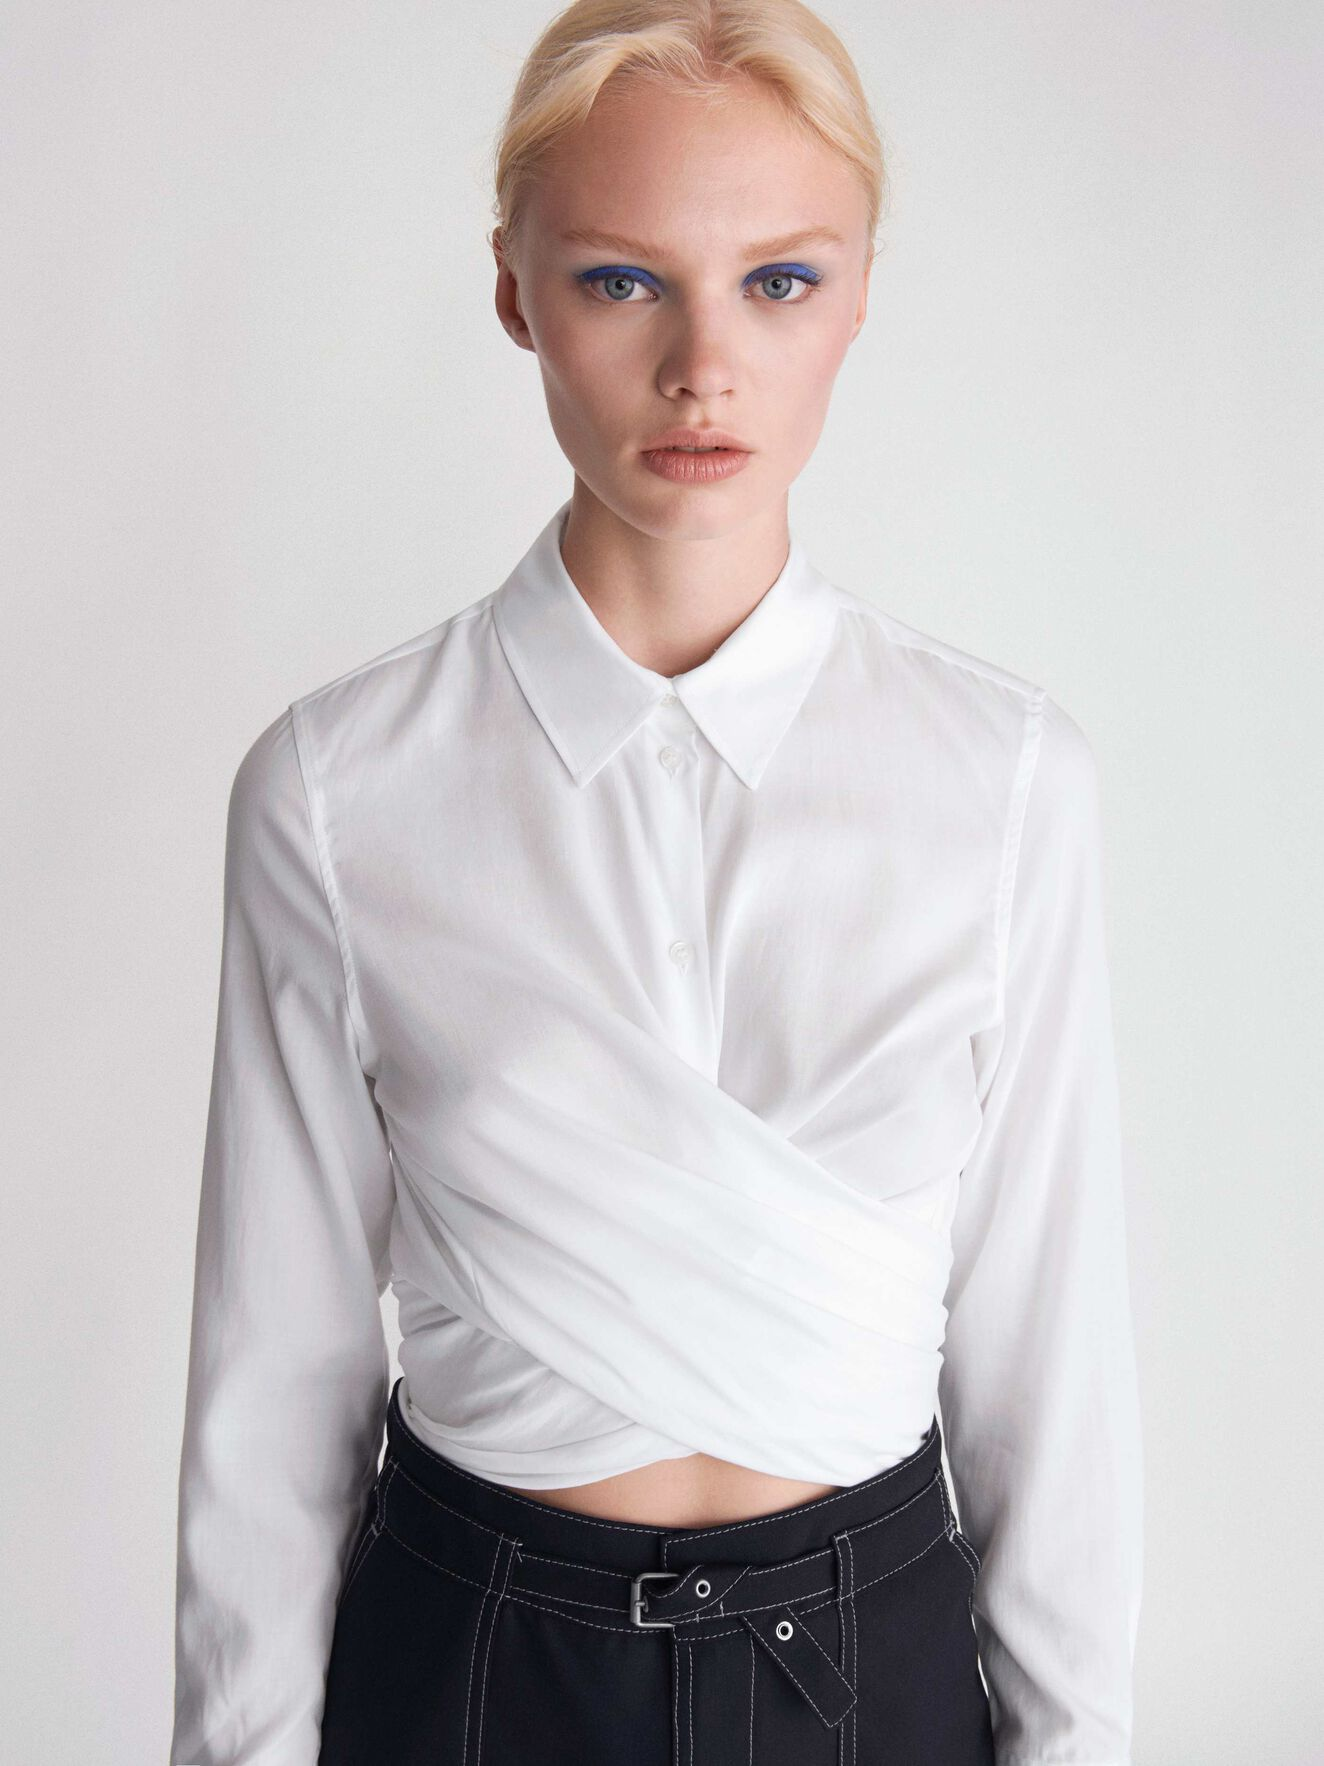 Noka Shirt in Pure white from Tiger of Sweden